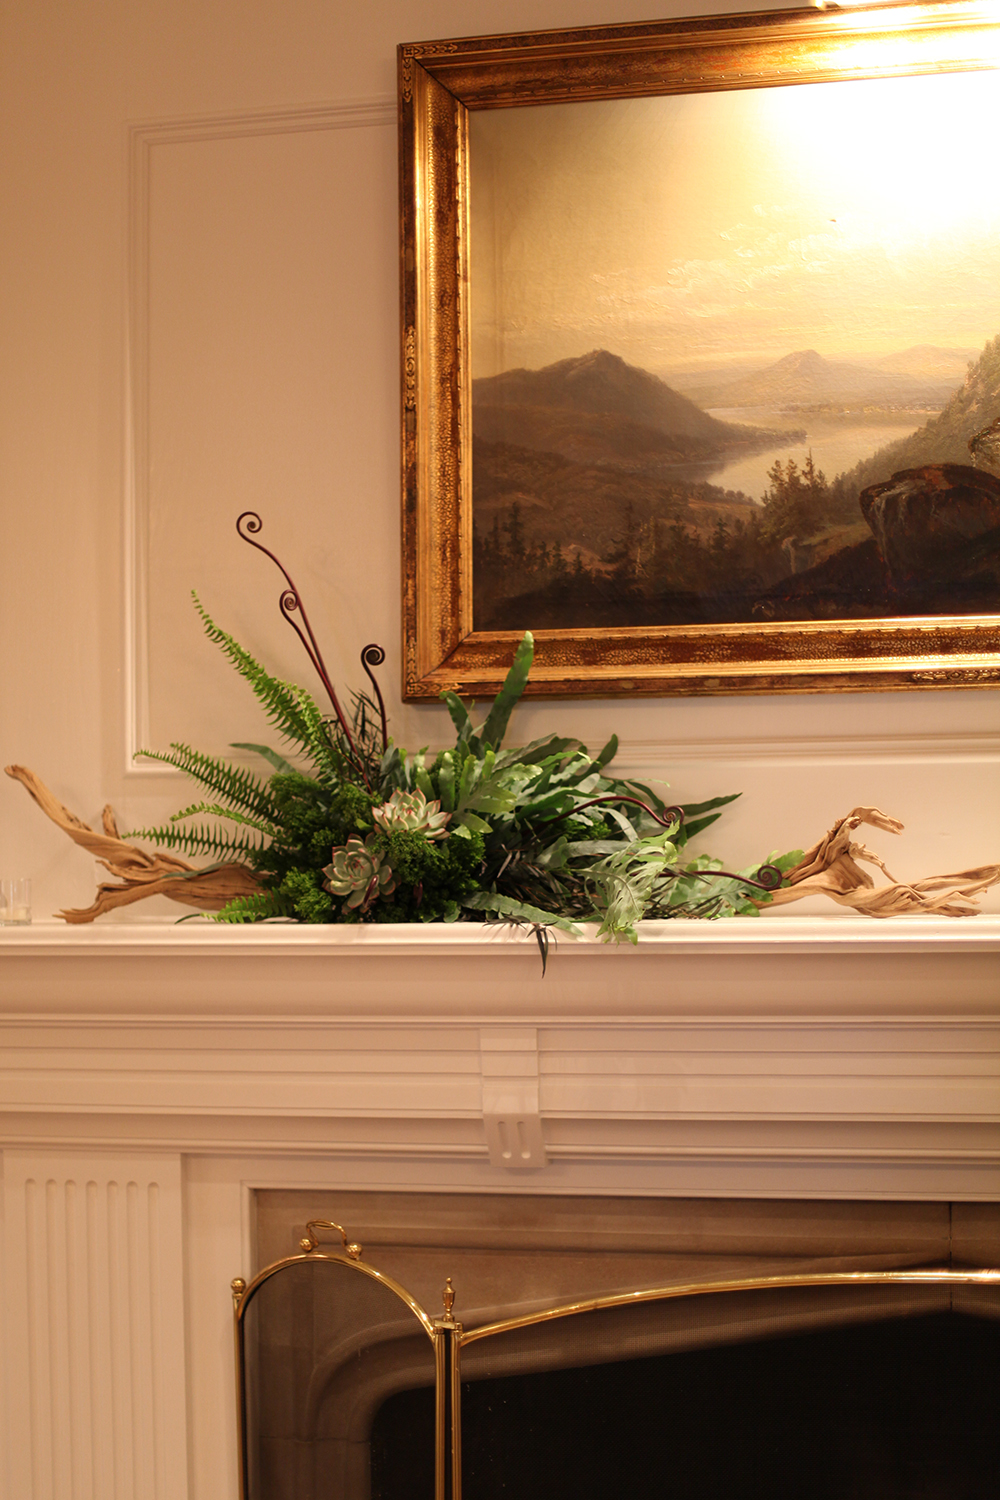 Fireplace mantel at Hyde Park Country Club, by Floral Verde LLC in Cincinnati, OH, with ghost wood branches, fiddlehead fern curls, agonis, Echeveria colorata, Blue Star fern, green trachelium, and Kimberly Queen fern.